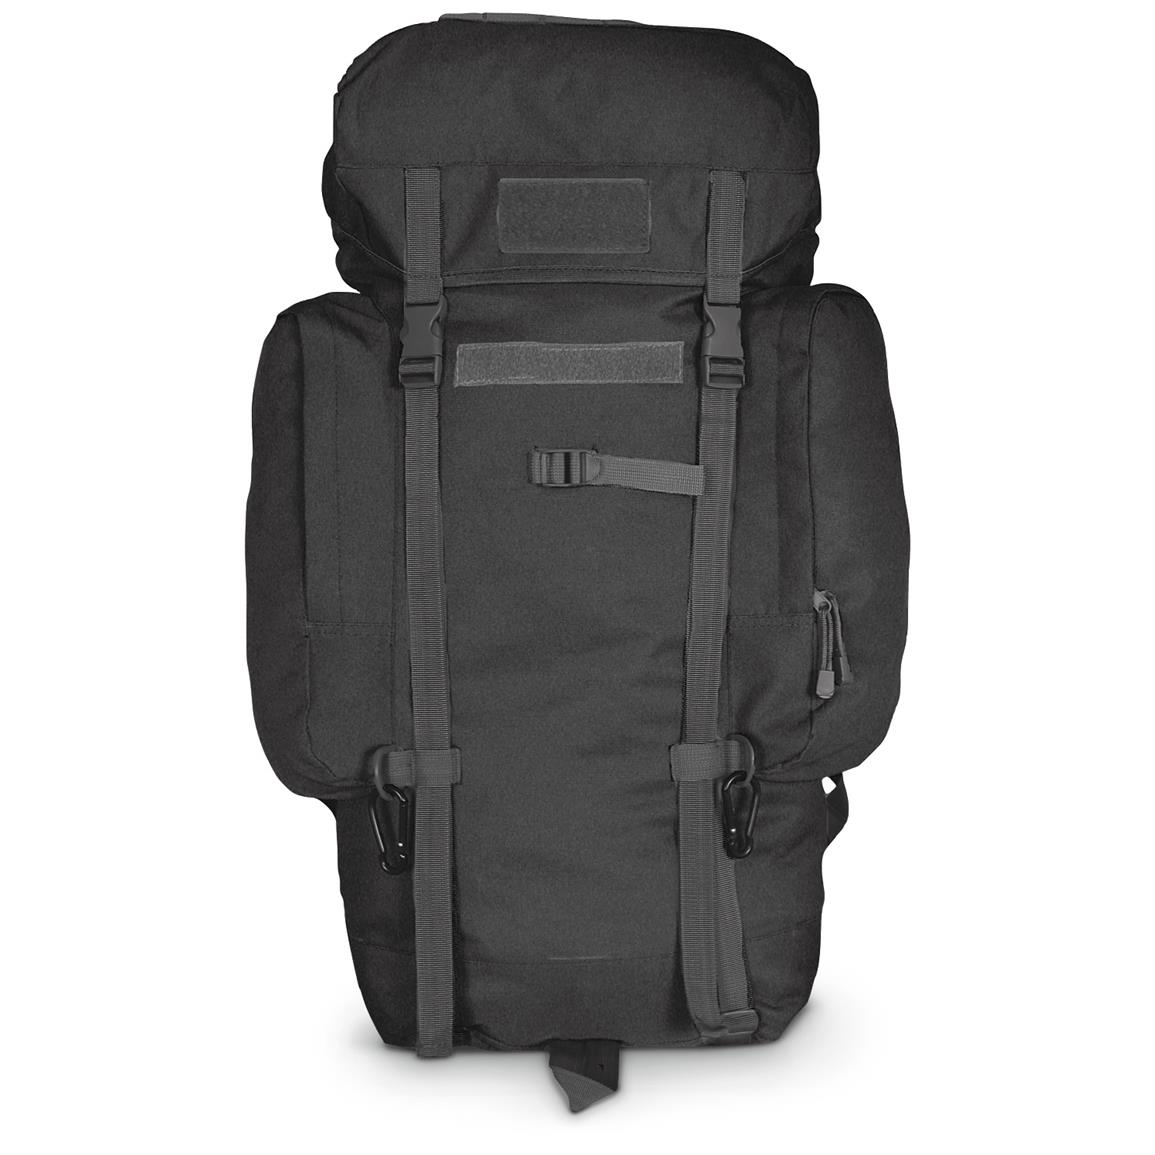 Fox Tactical Rio Grande Pack, 45 liters, Black